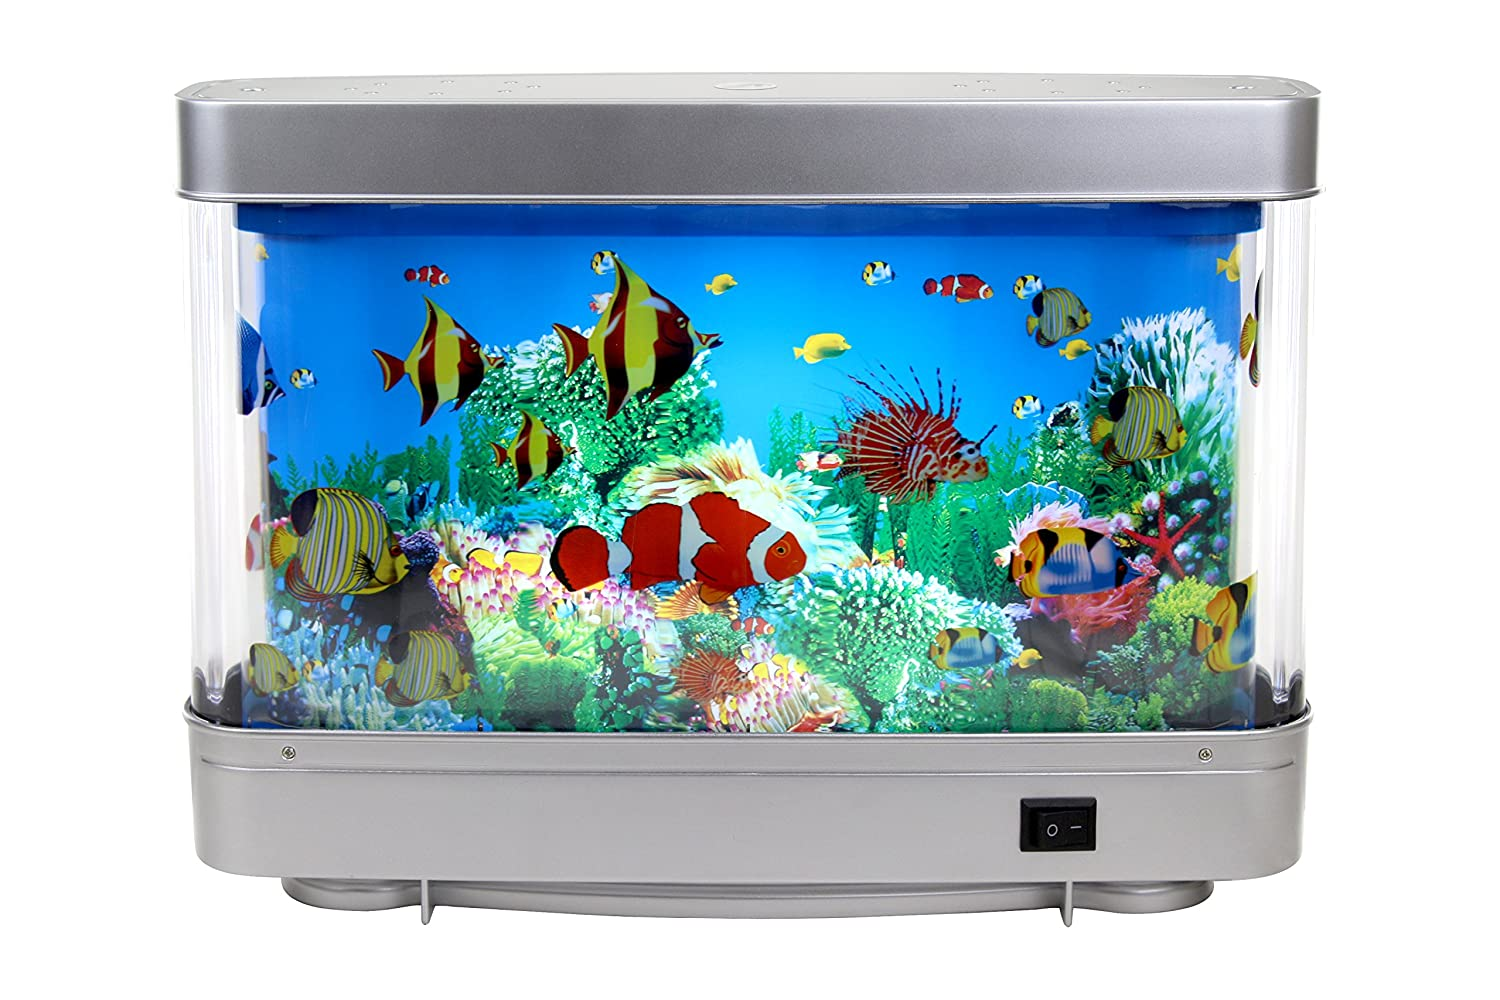 Fish aquarium price in pakistan - Lightahead Artificial Tropical Fish Aquarium Decorative Lamp